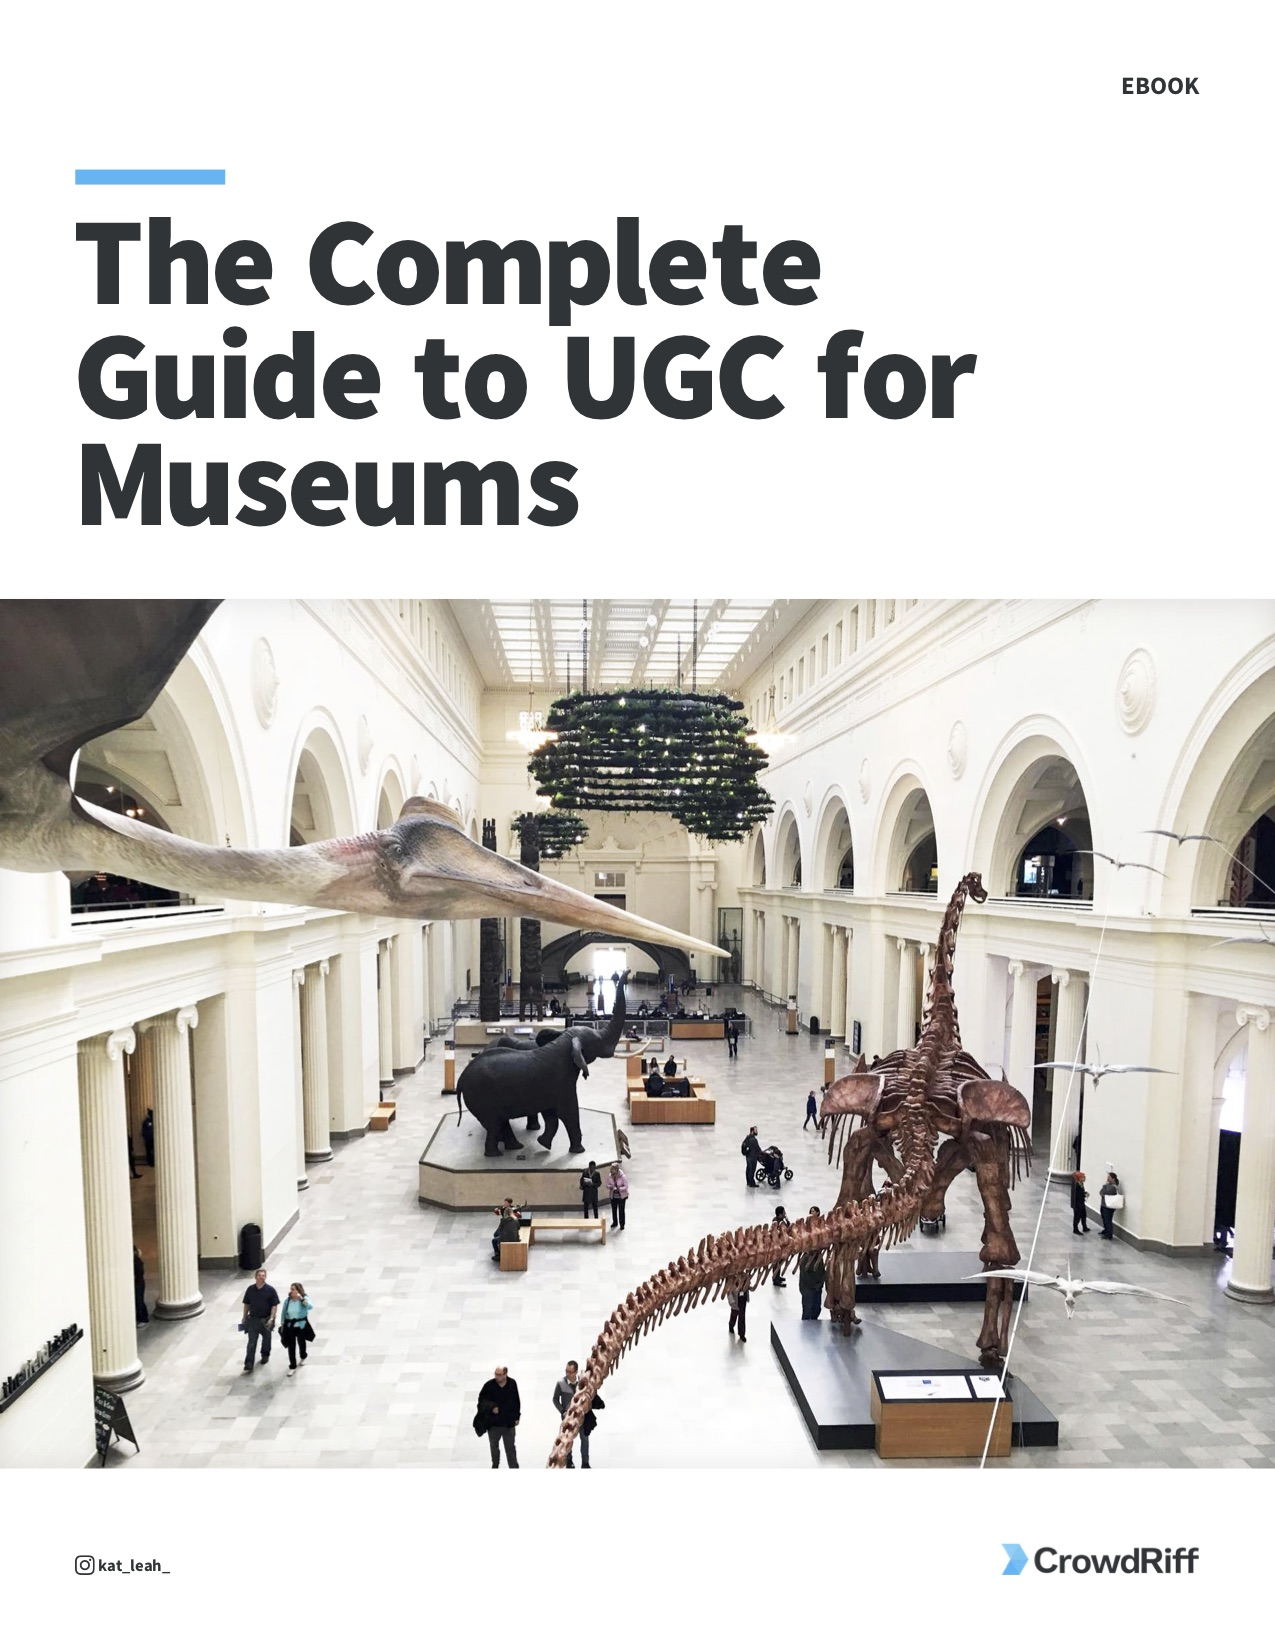 The Complete Guide to UGC for Museums